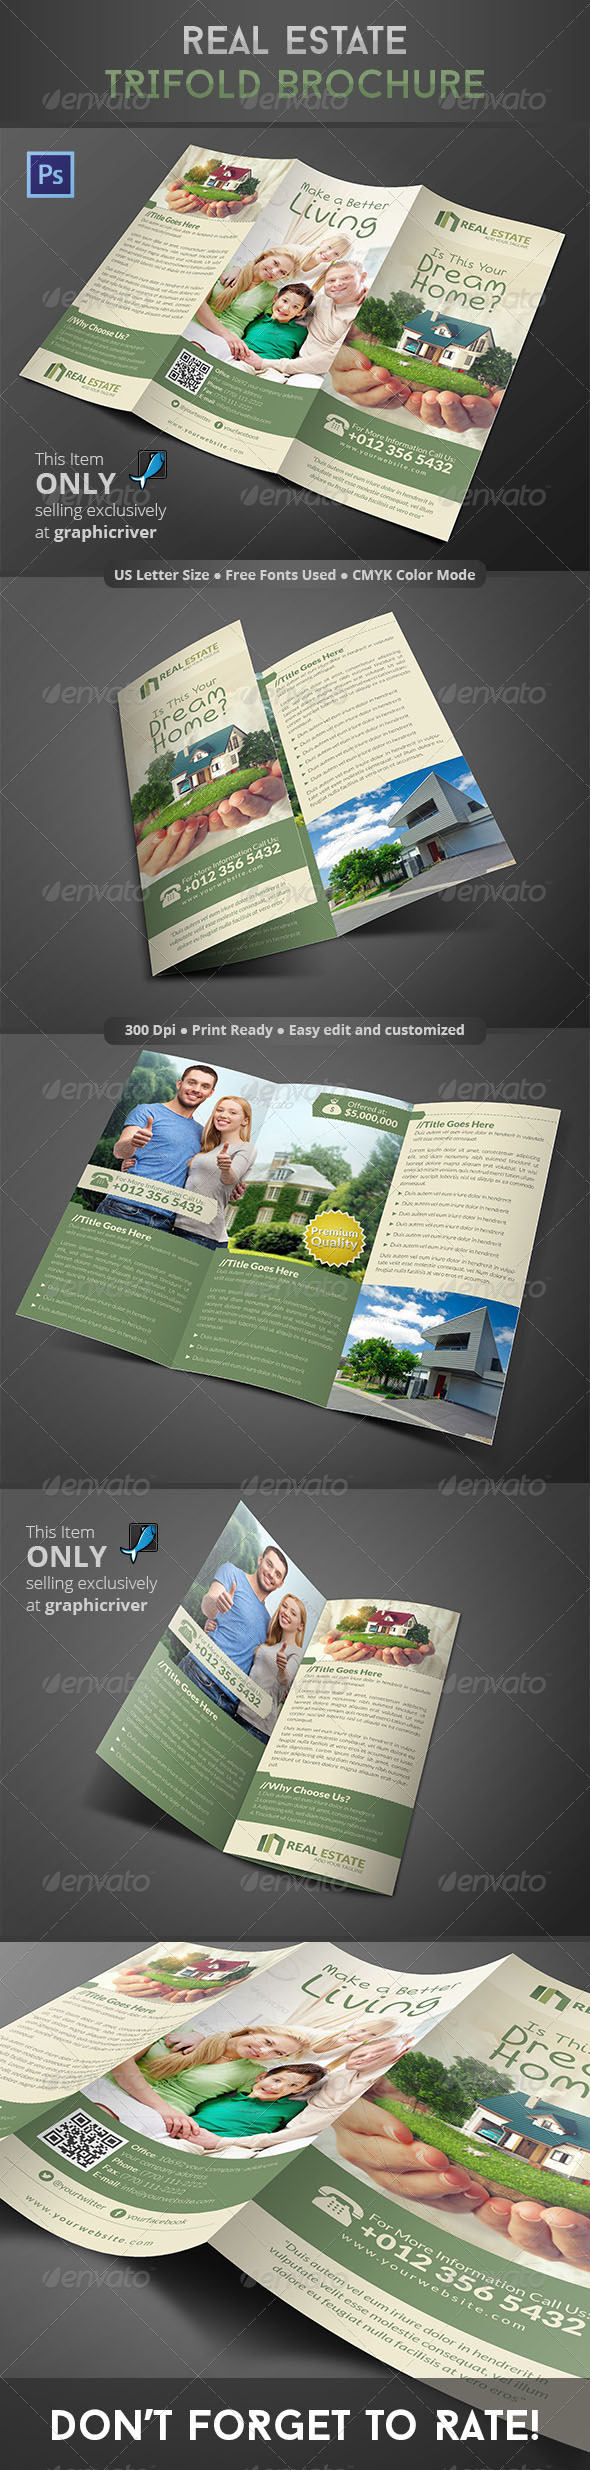 GraphicRiver Real Estate Trifold Brochure 8606749